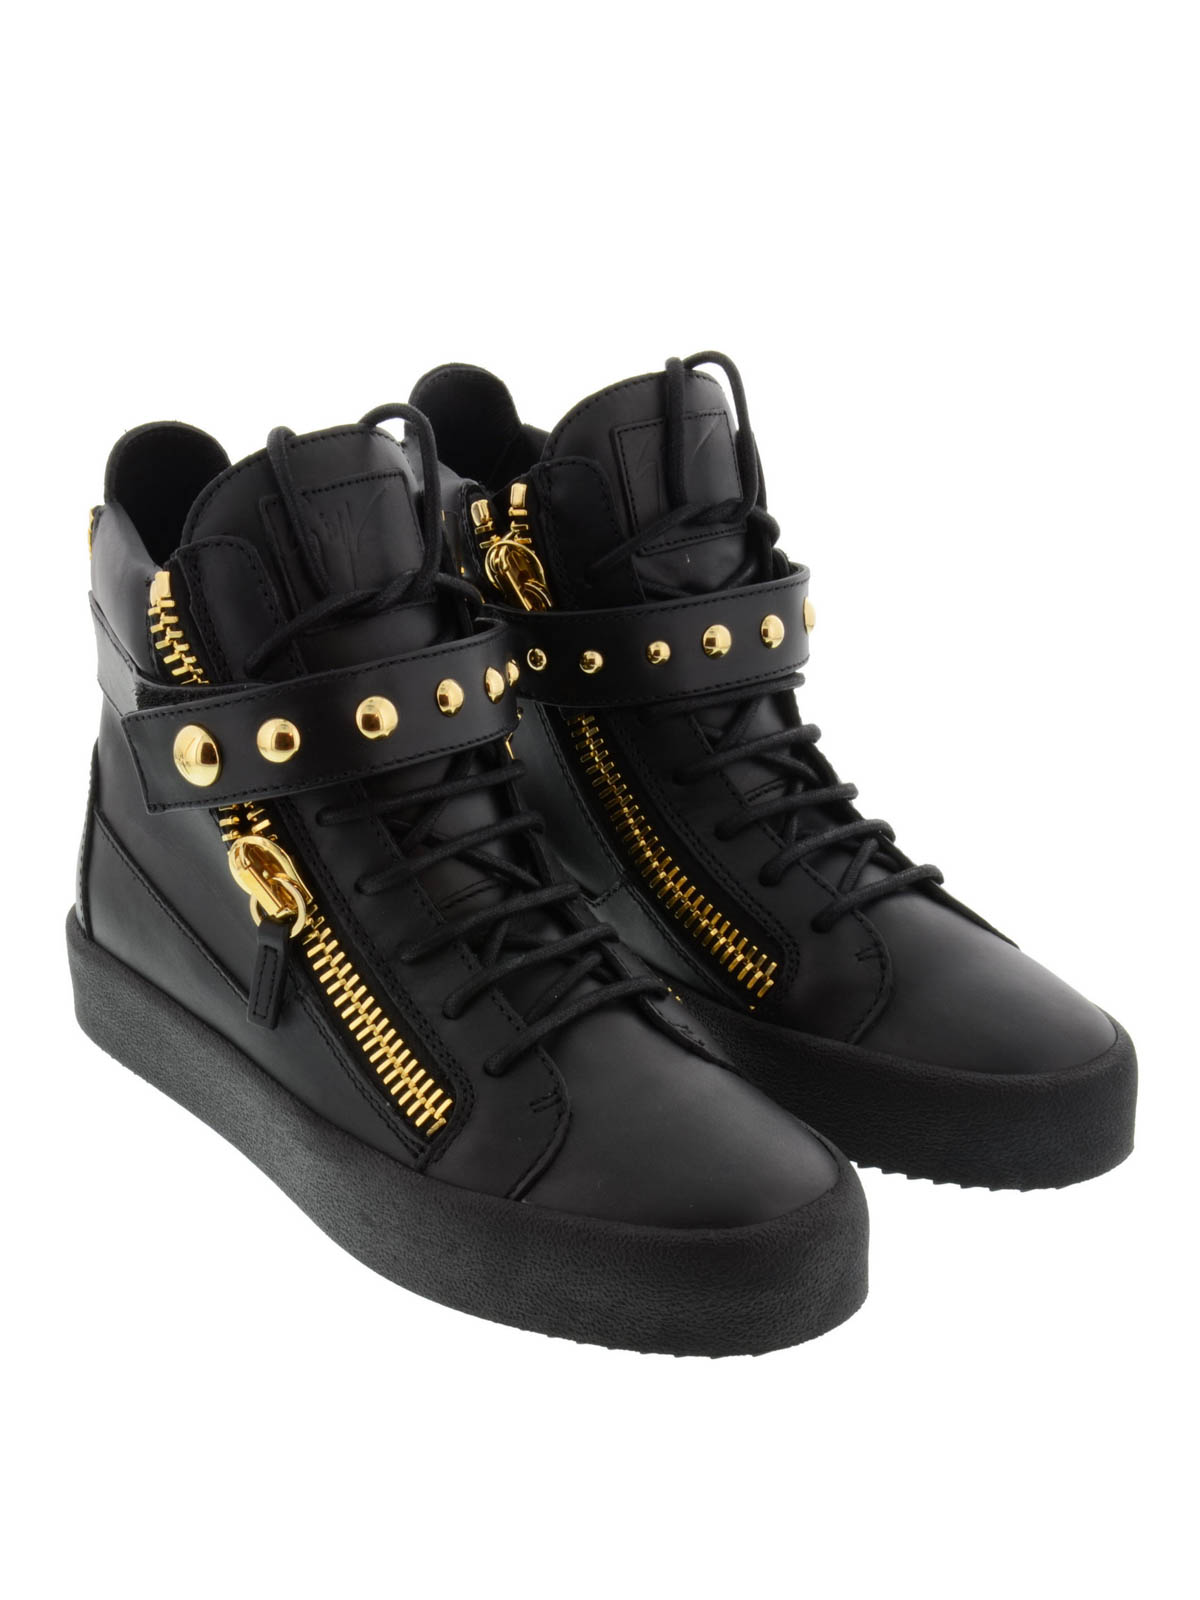 giuseppe zanotti high top riley sneakers trainers. Black Bedroom Furniture Sets. Home Design Ideas